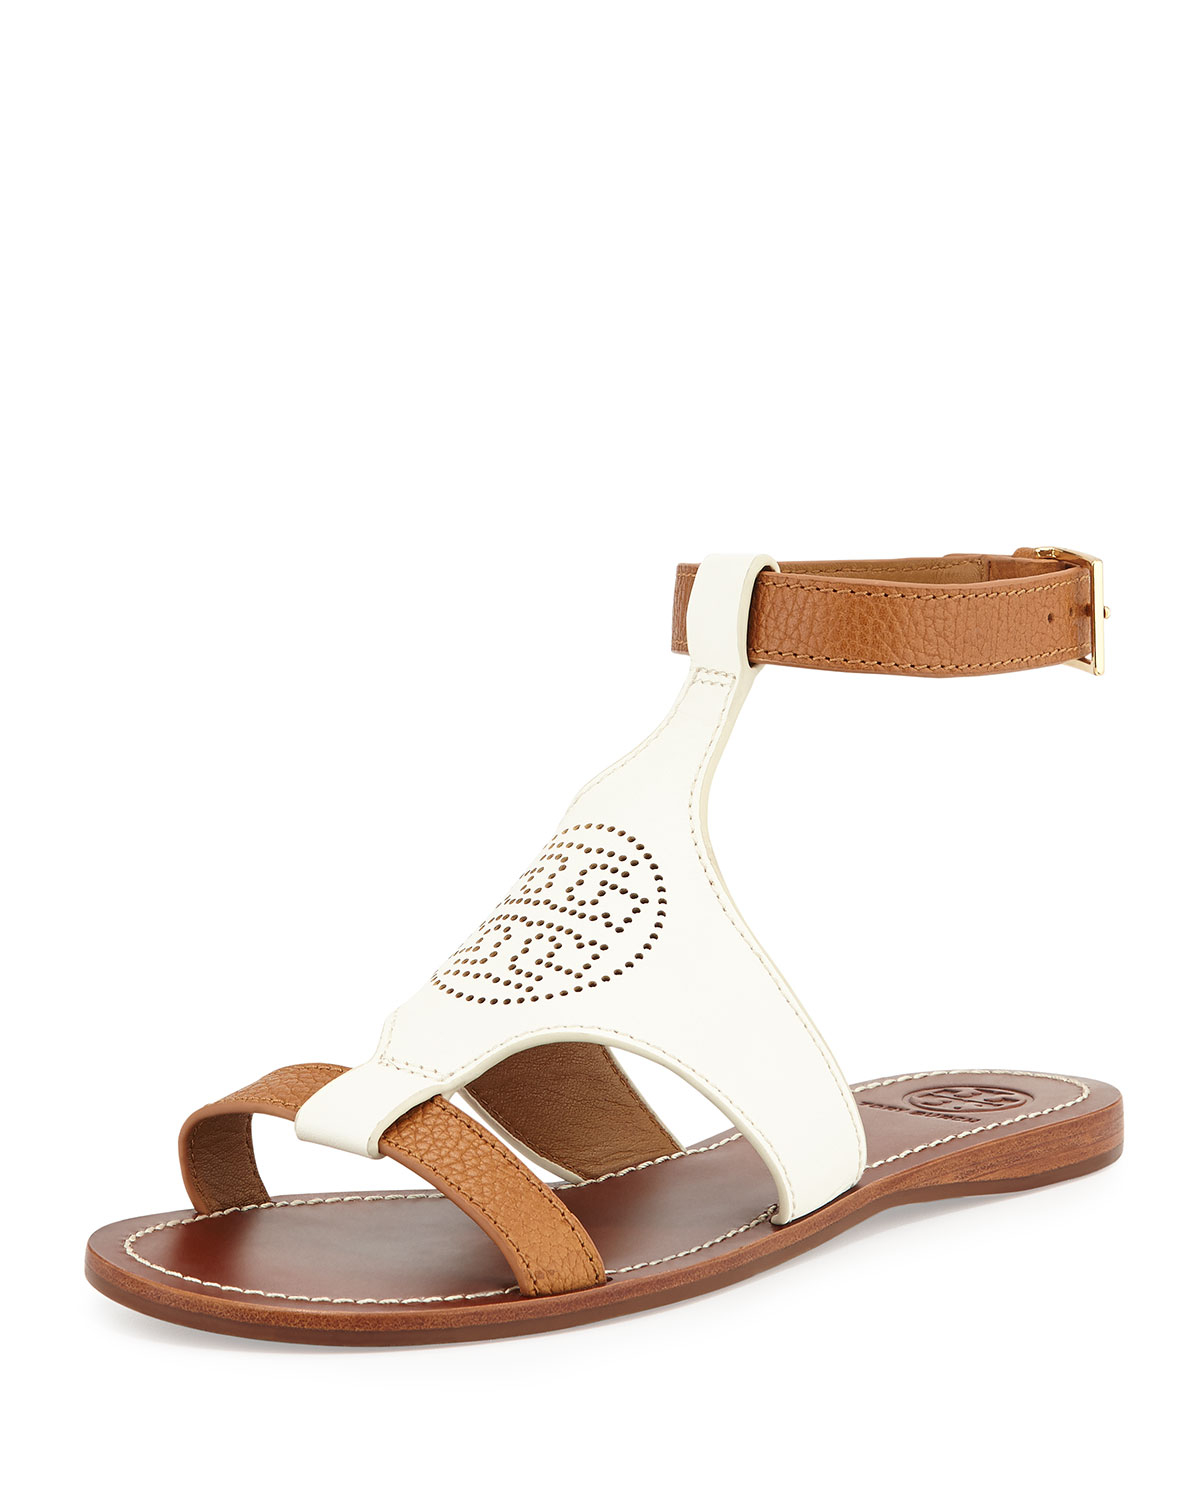 Tory Burch Leather Caged Sandals outlet store Locations visa payment sale online with credit card outlet get authentic rwe3Jk